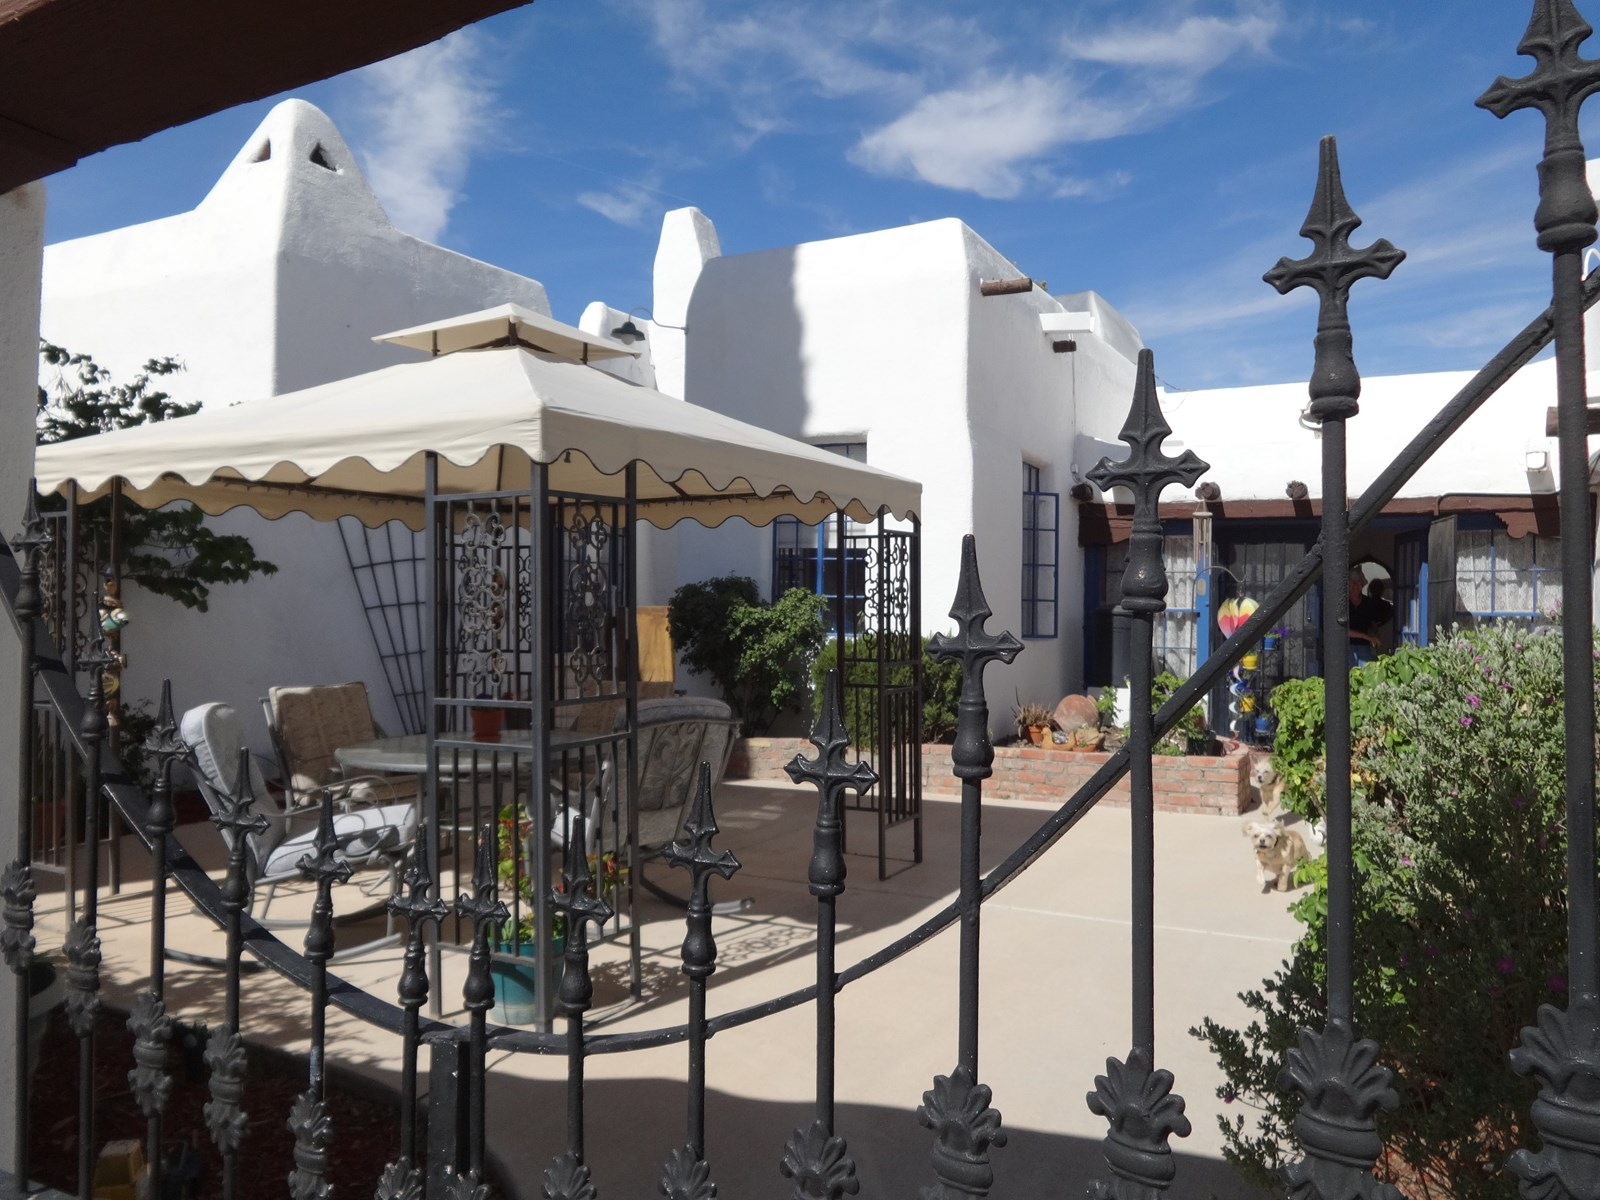 Deming NM Adobe home with Casita for sale